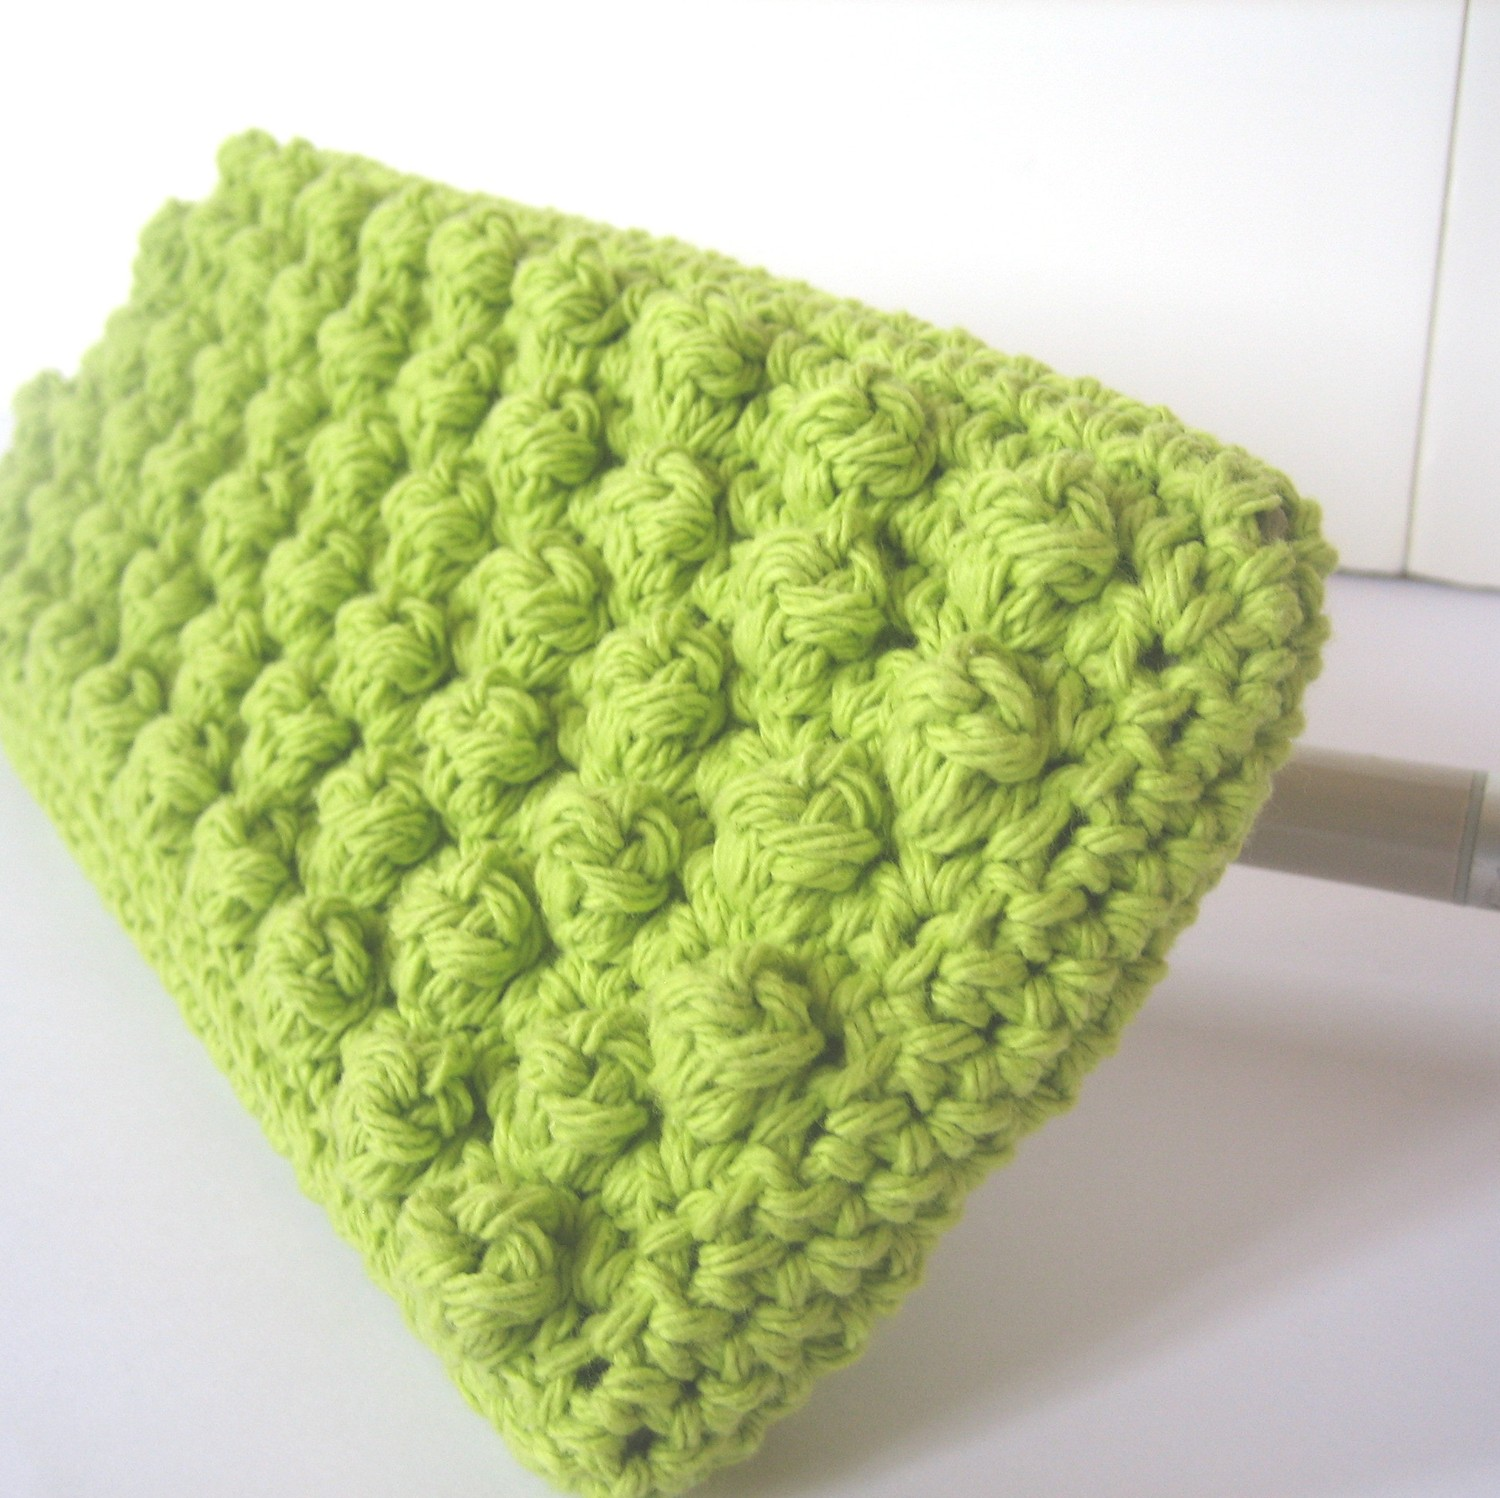 Free Crochet Book Cover Patterns ~ Of crochet and life august